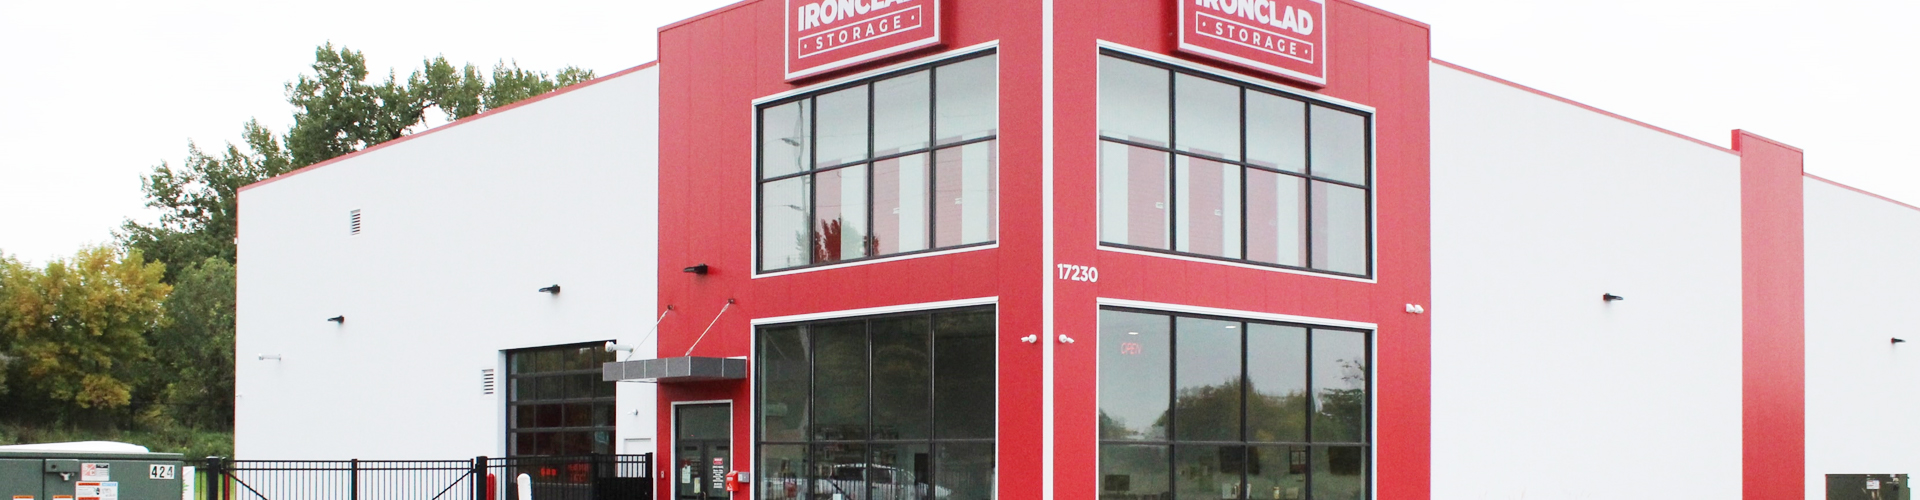 Ironclad Storage in Prior Lake MN